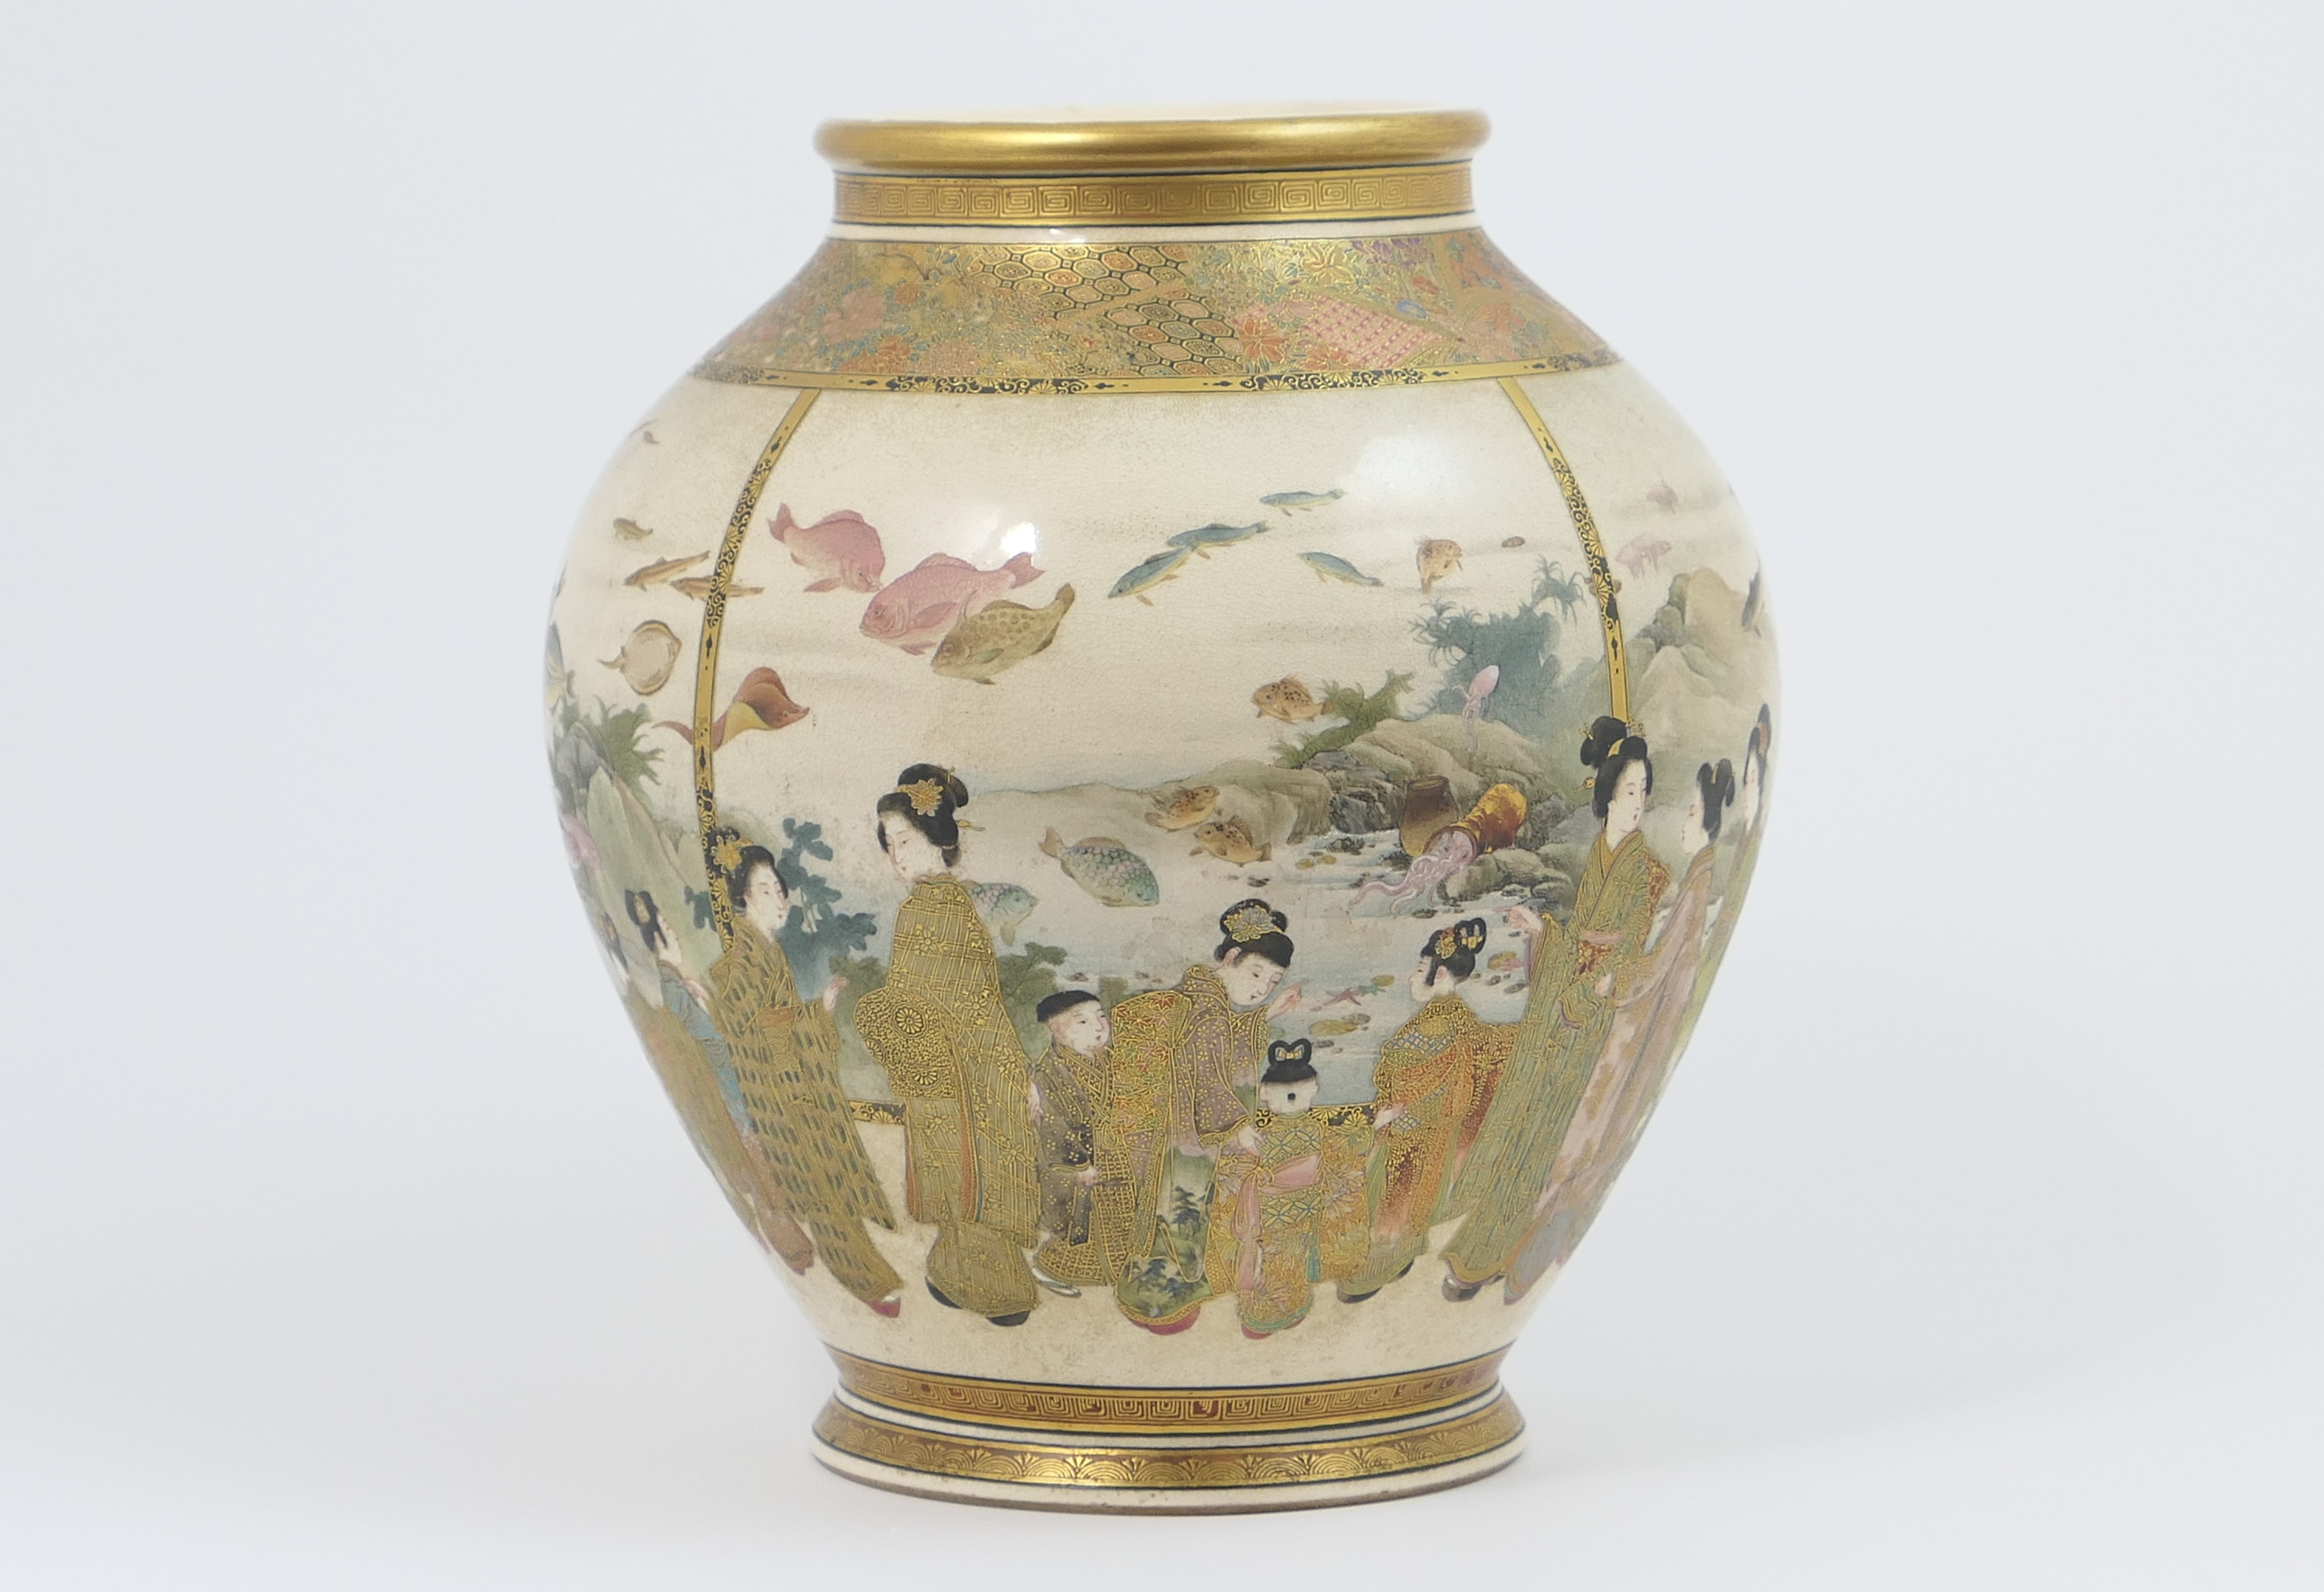 Lot 49 - Fine Japanese Satsuma earthenware vase, Meiji (1868-1912), baluster form with wide, finely gilded